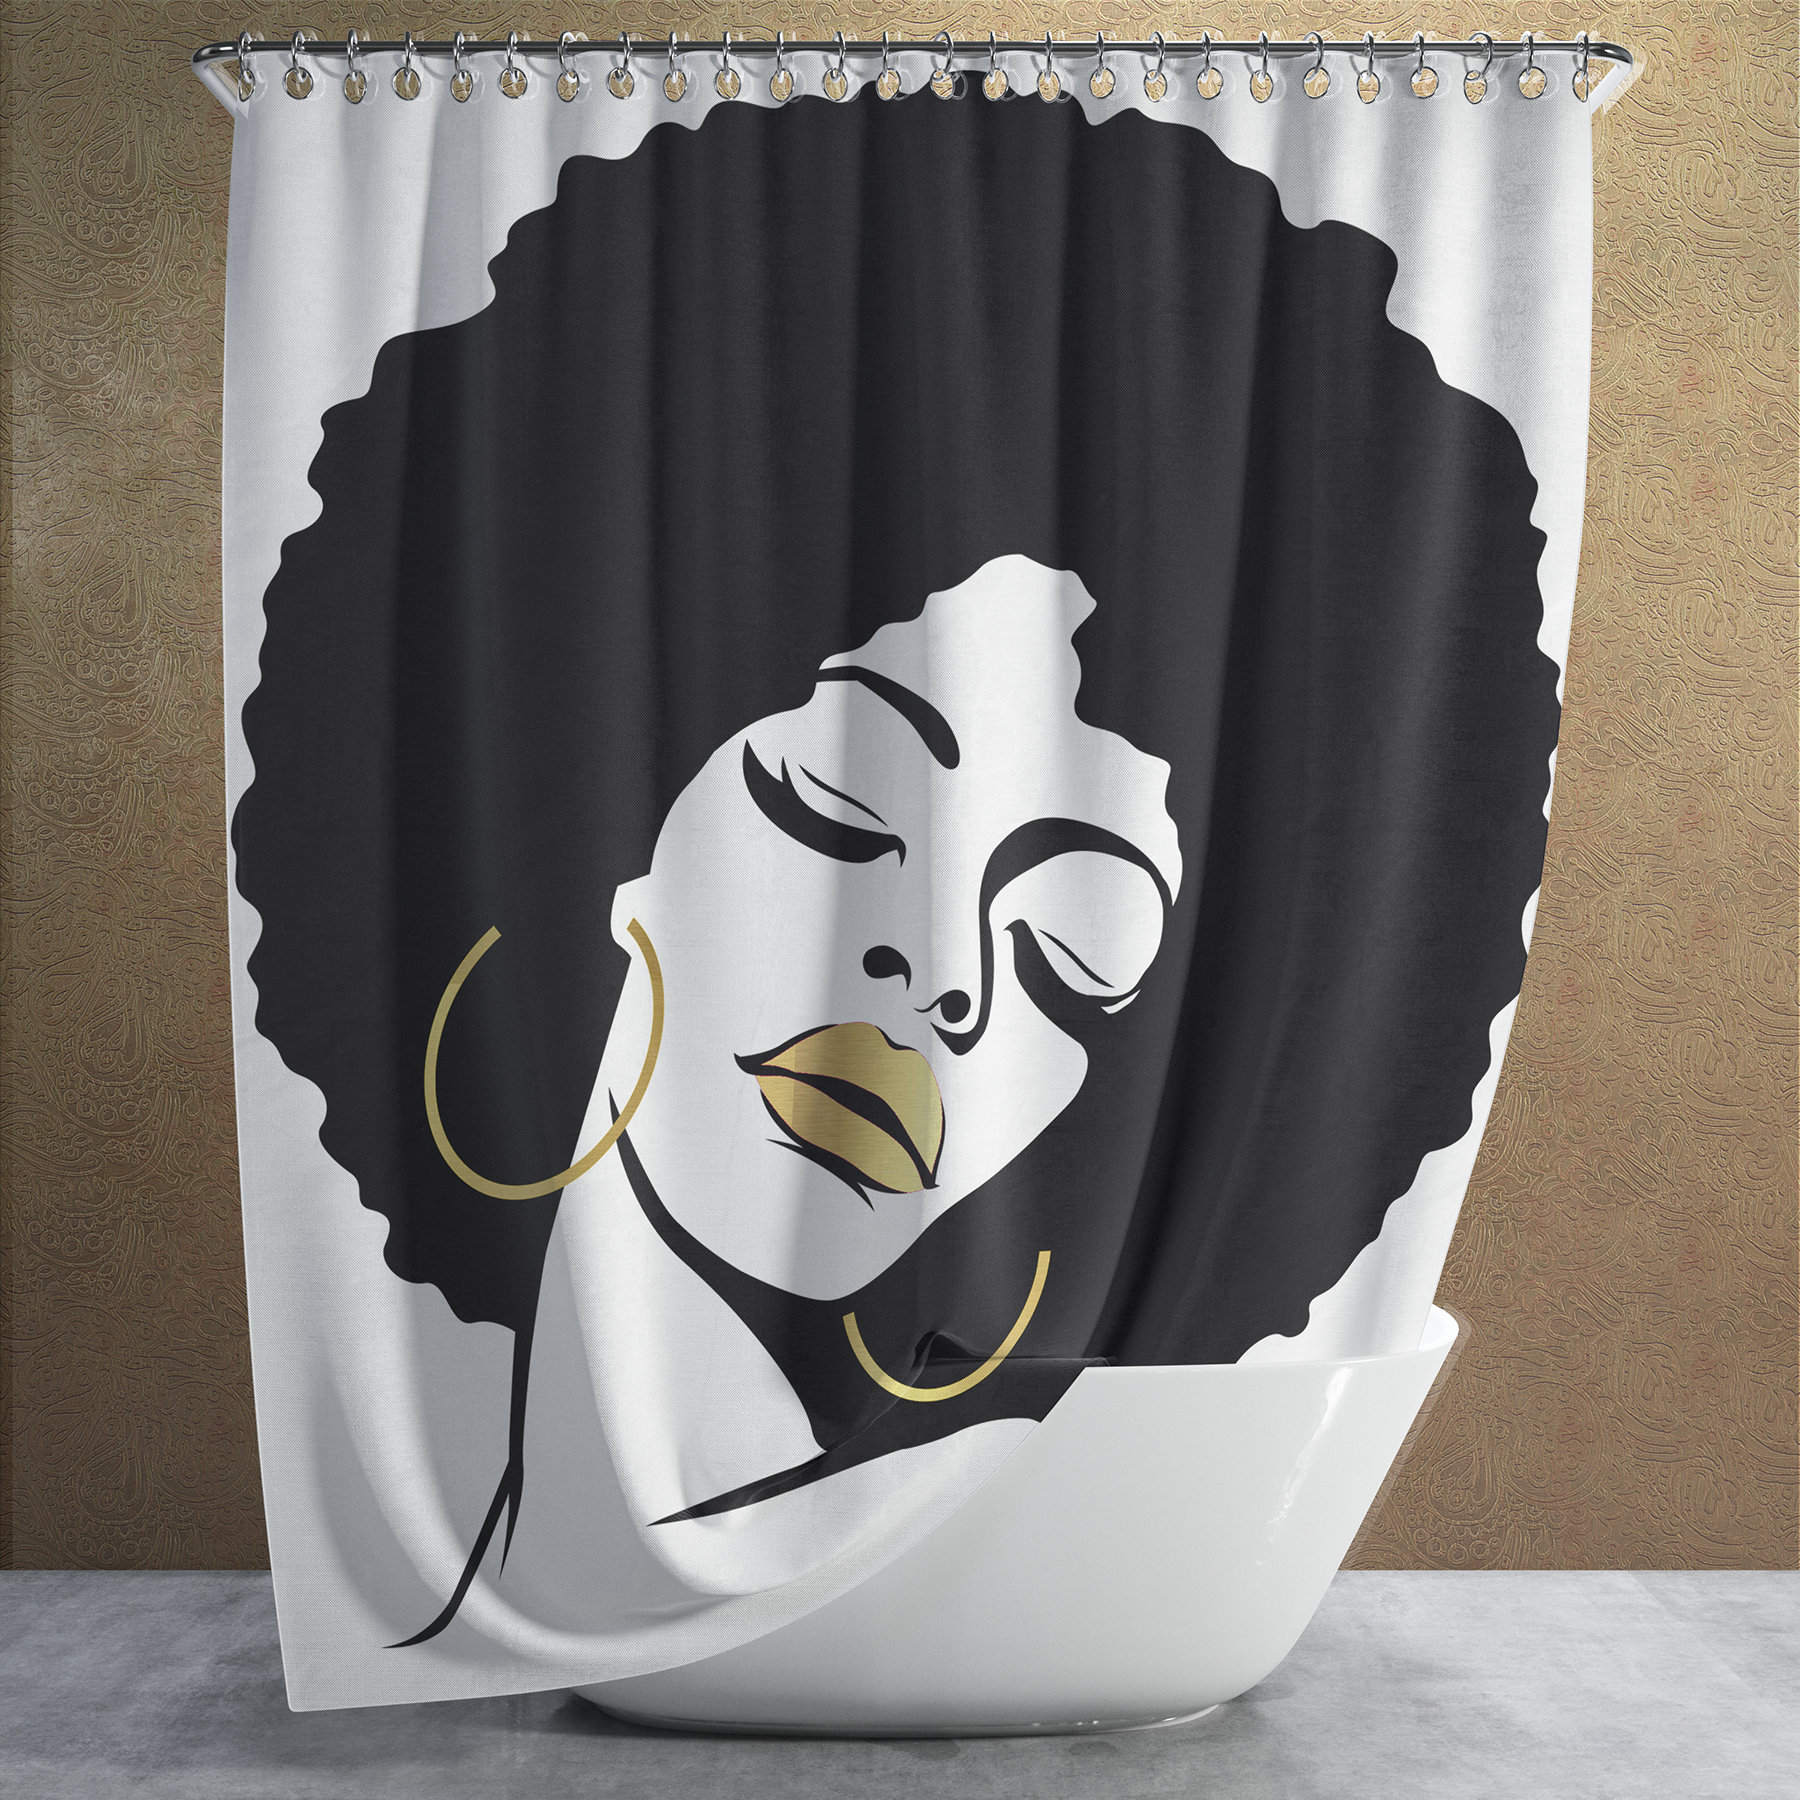 Black Queen Shower Curtain White Black Girl Magic Shower Curtain Bathroom Wall Tapestry Faux Gold Lips Afro Diva Melanin Queen African Home Gift Housewarming Wedding